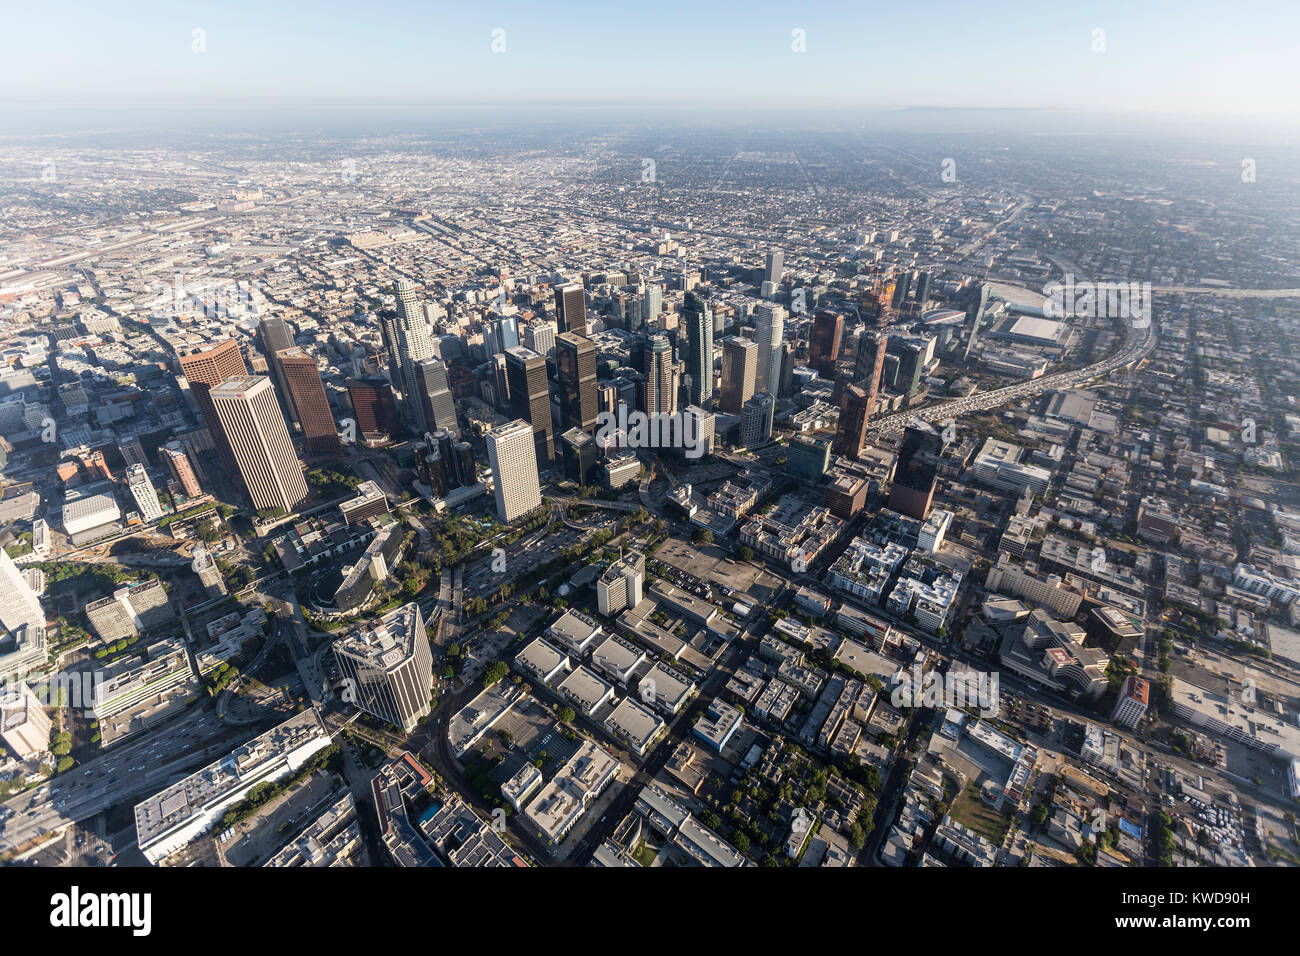 Los Angeles, California, USA - August 7, 2017:  Aerial view of downtown Los Angeles skyline and streets. Stock Photo